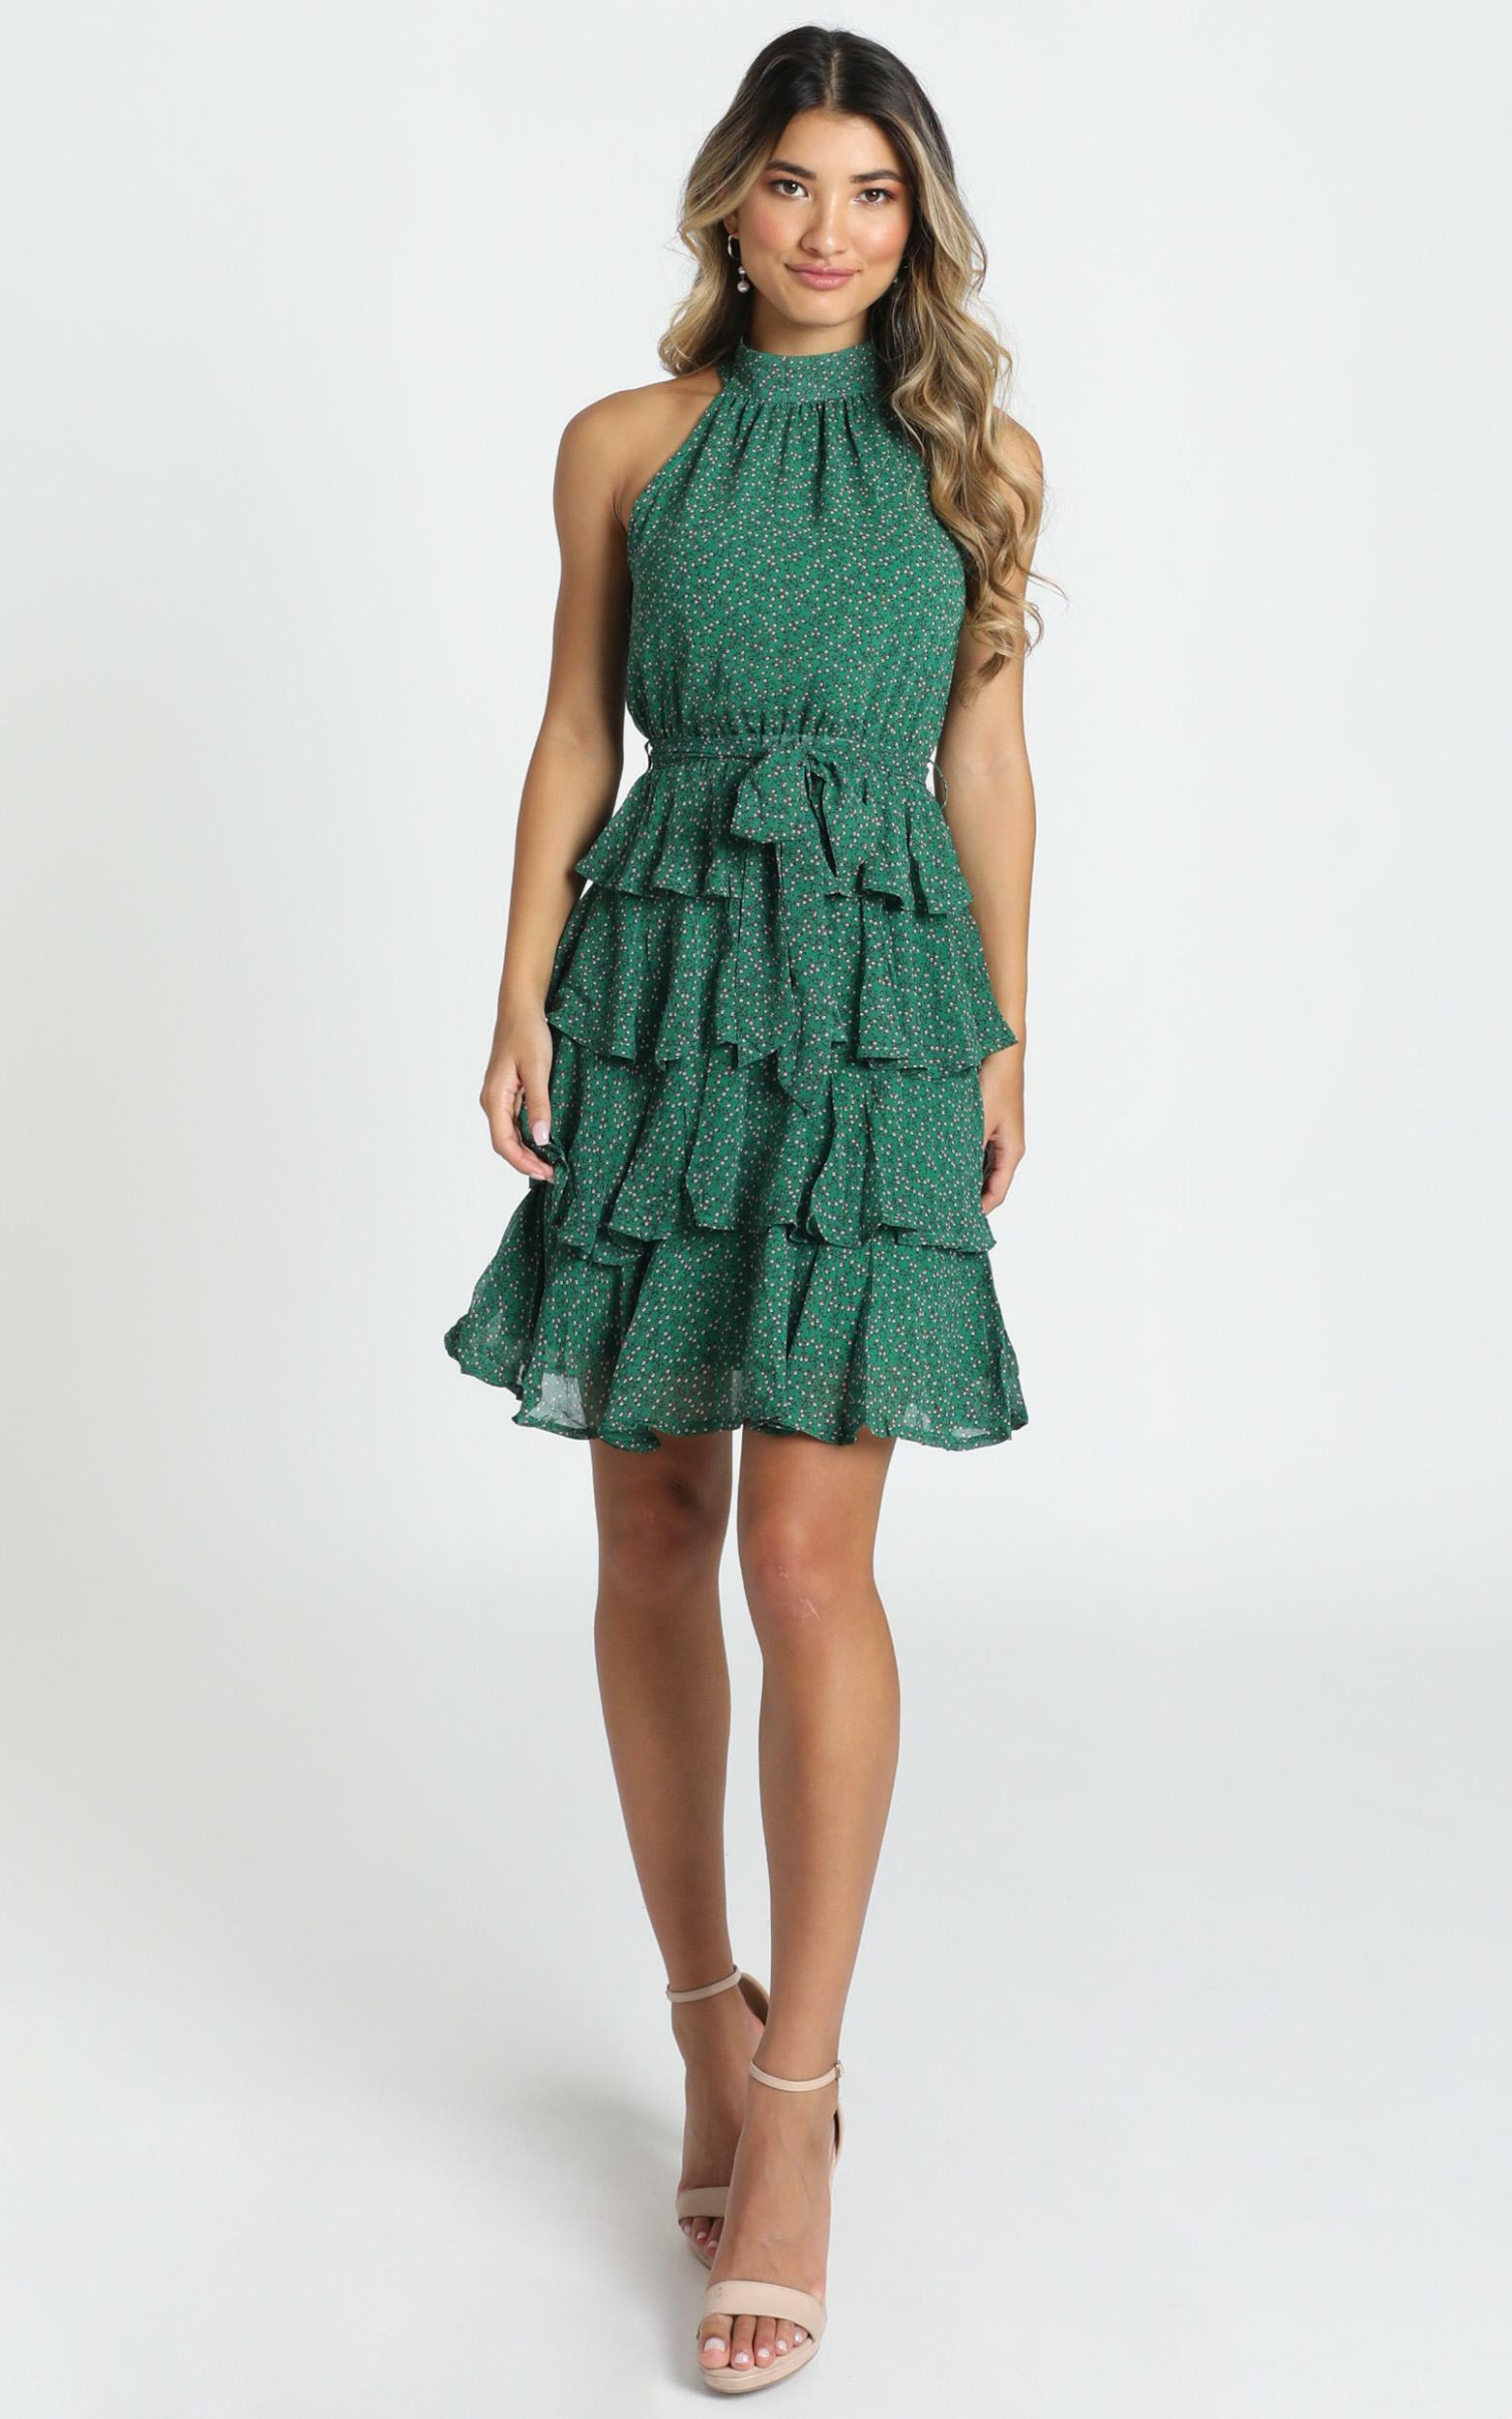 Blythe High Neck Mini Dress in emerald print - 12 (L), Green, hi-res image number null